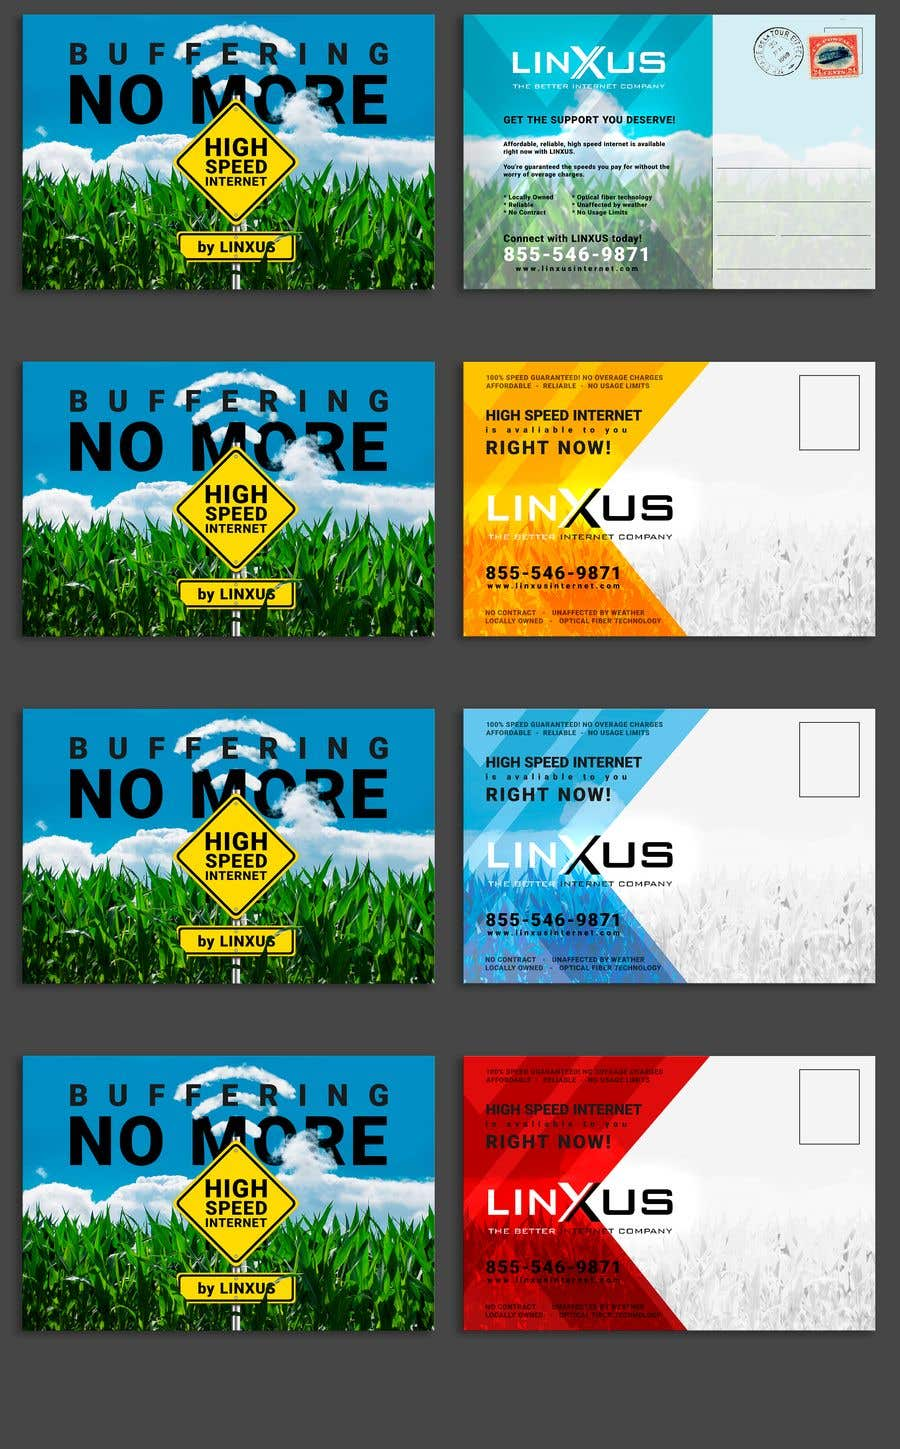 Penyertaan Peraduan #40 untuk Create a stunning and mind blowing new marketing postcard for our Rural Internet Service